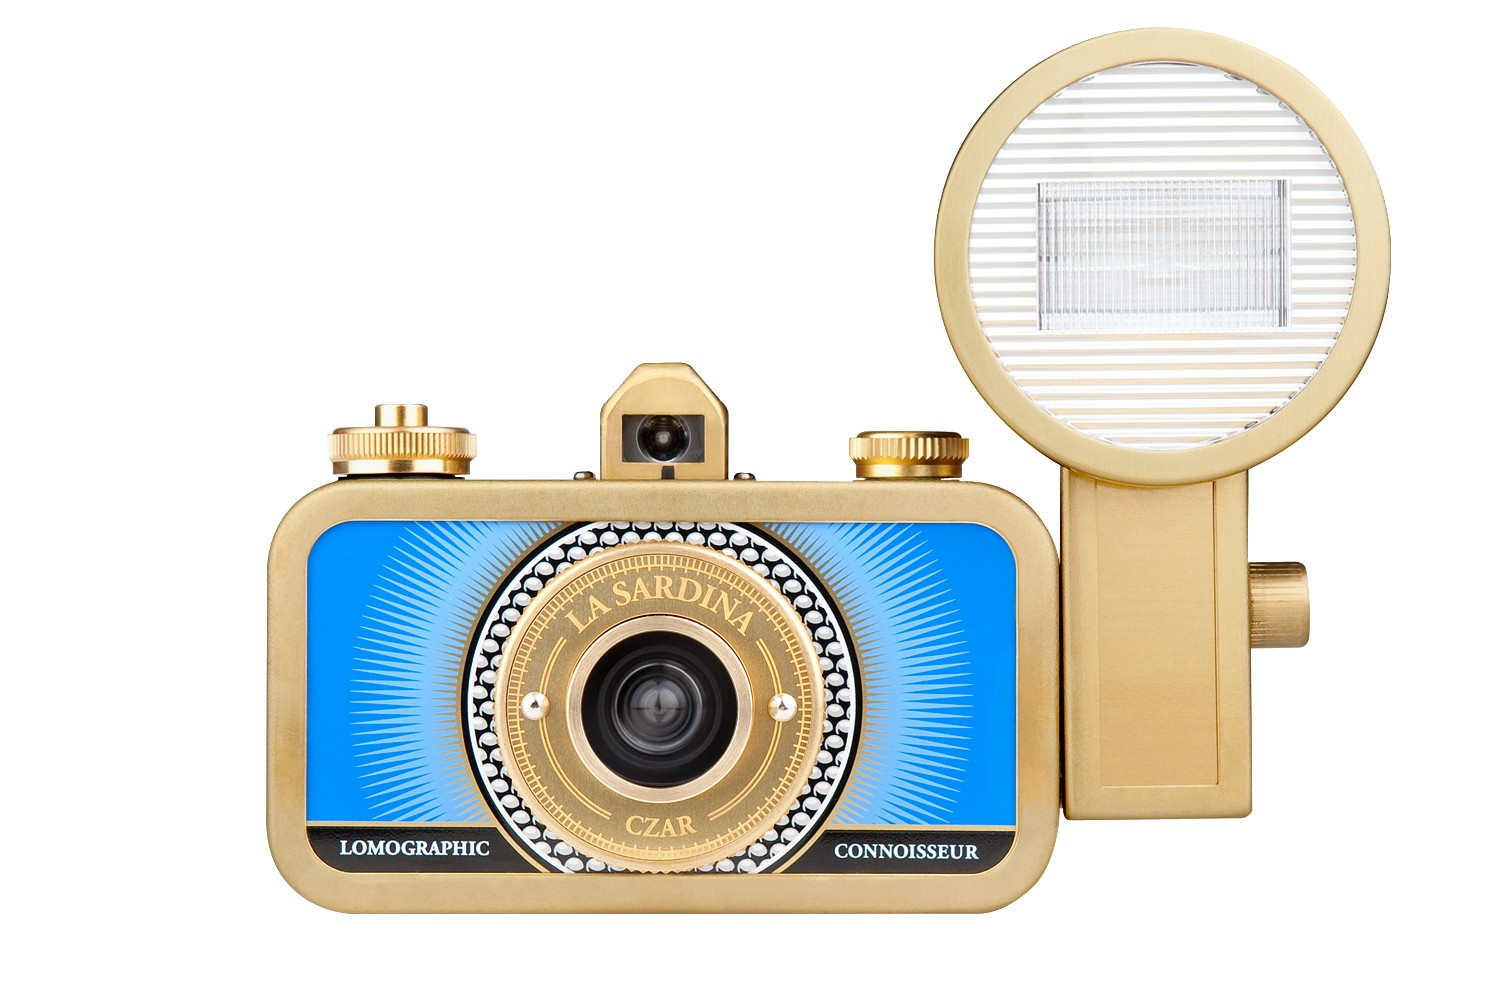 La Sardina Camera and Flash (Czar Edition)